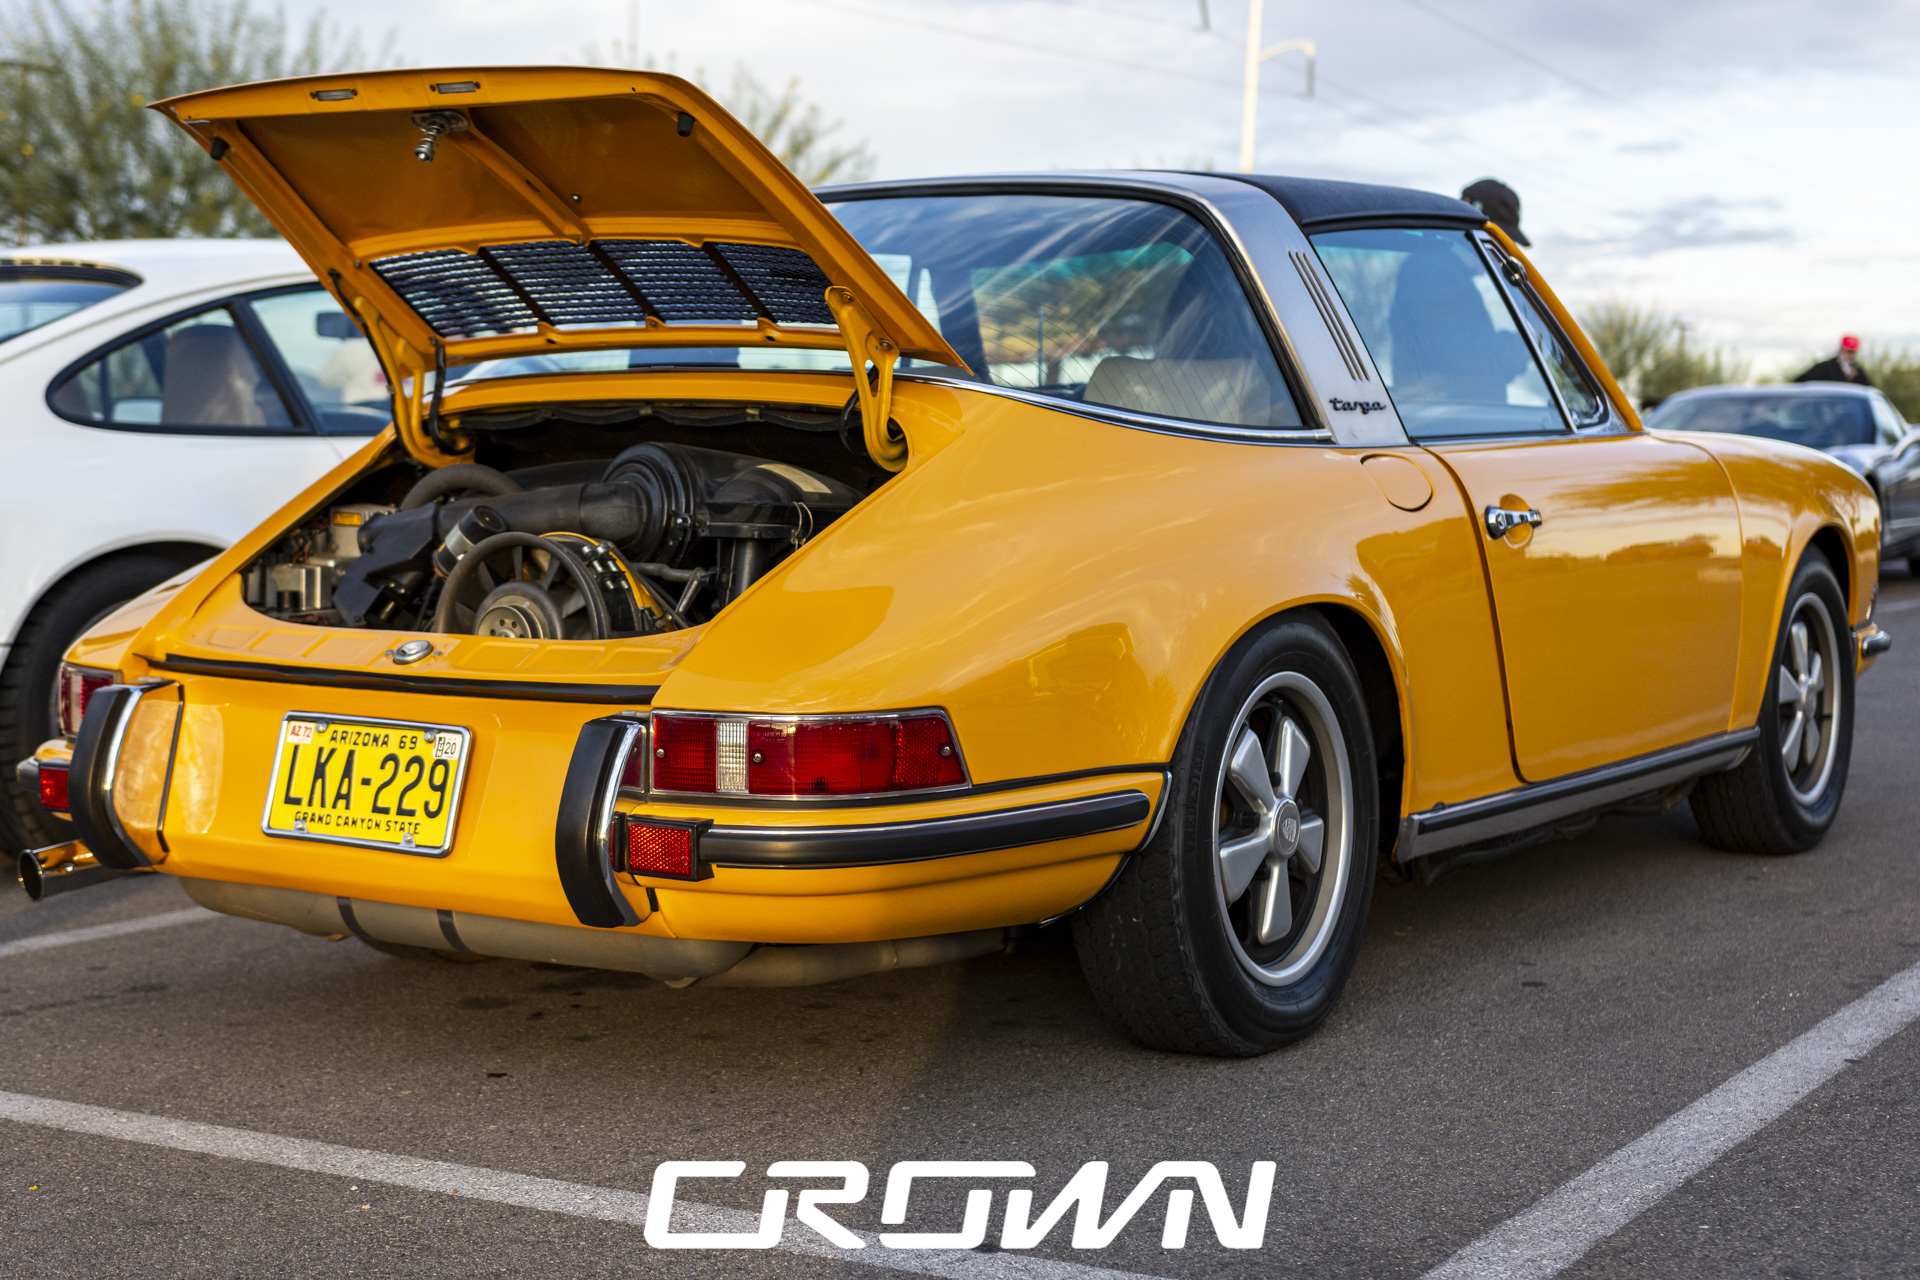 1972 Porsche 911 T Targa in yellow at cars and coffee tucson Arizona